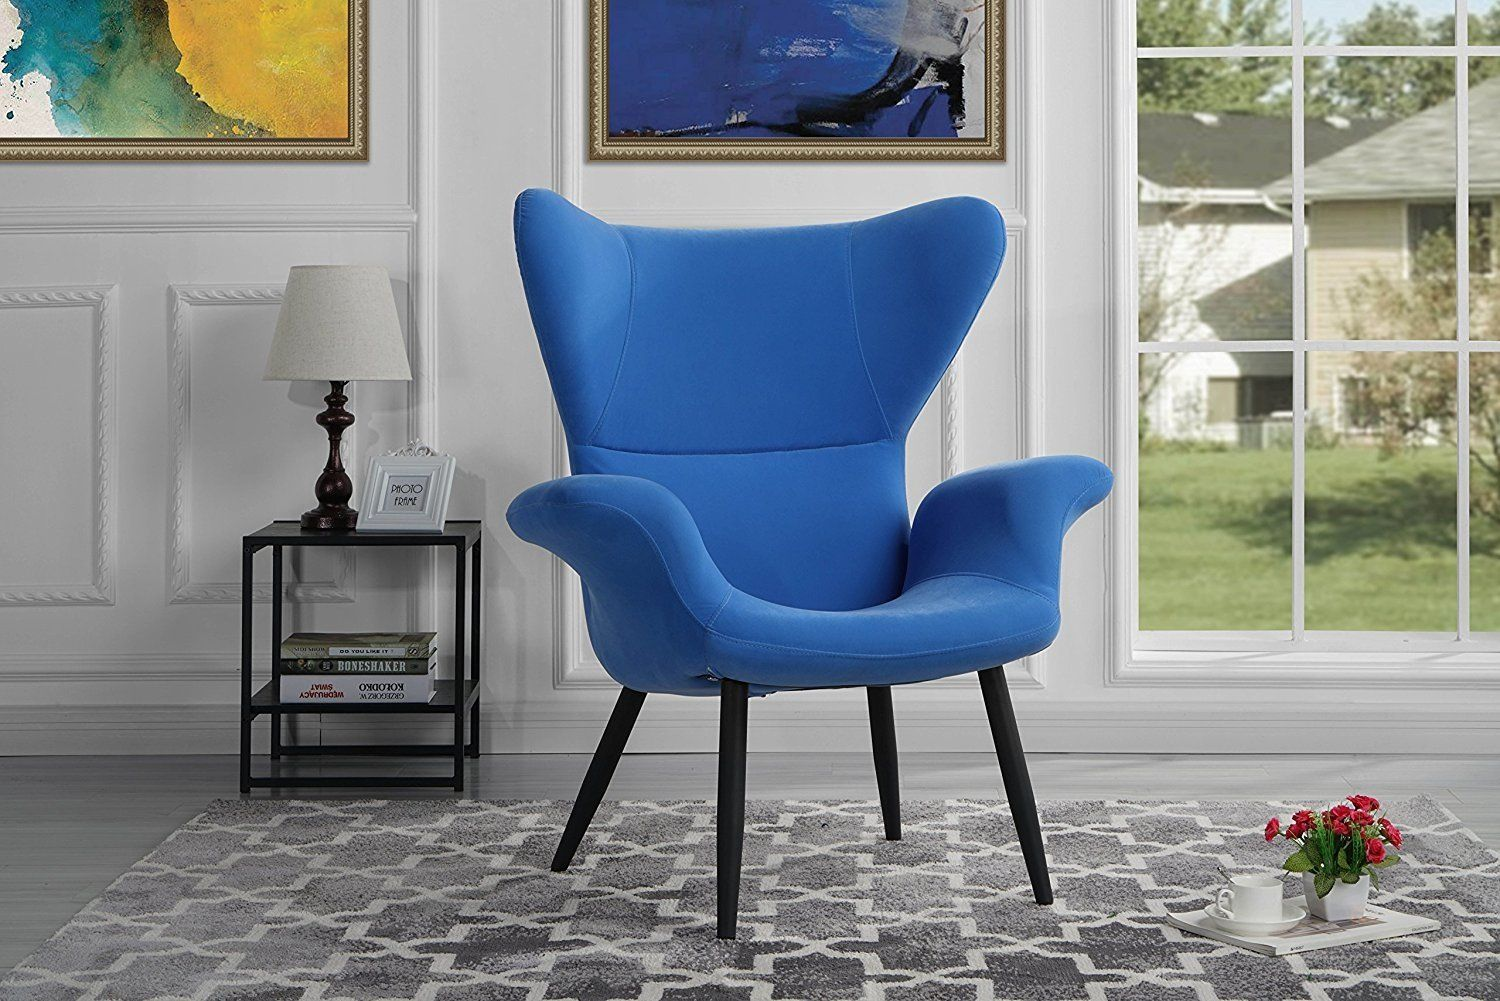 Mobilis Modern Shelter Armchair With Tall Arched Shelter Back Rest Sky Blue Walmart Com In 2020 Accent Arm Chairs Living Room Chairs Blue Furniture Living Room #tall #living #room #chairs